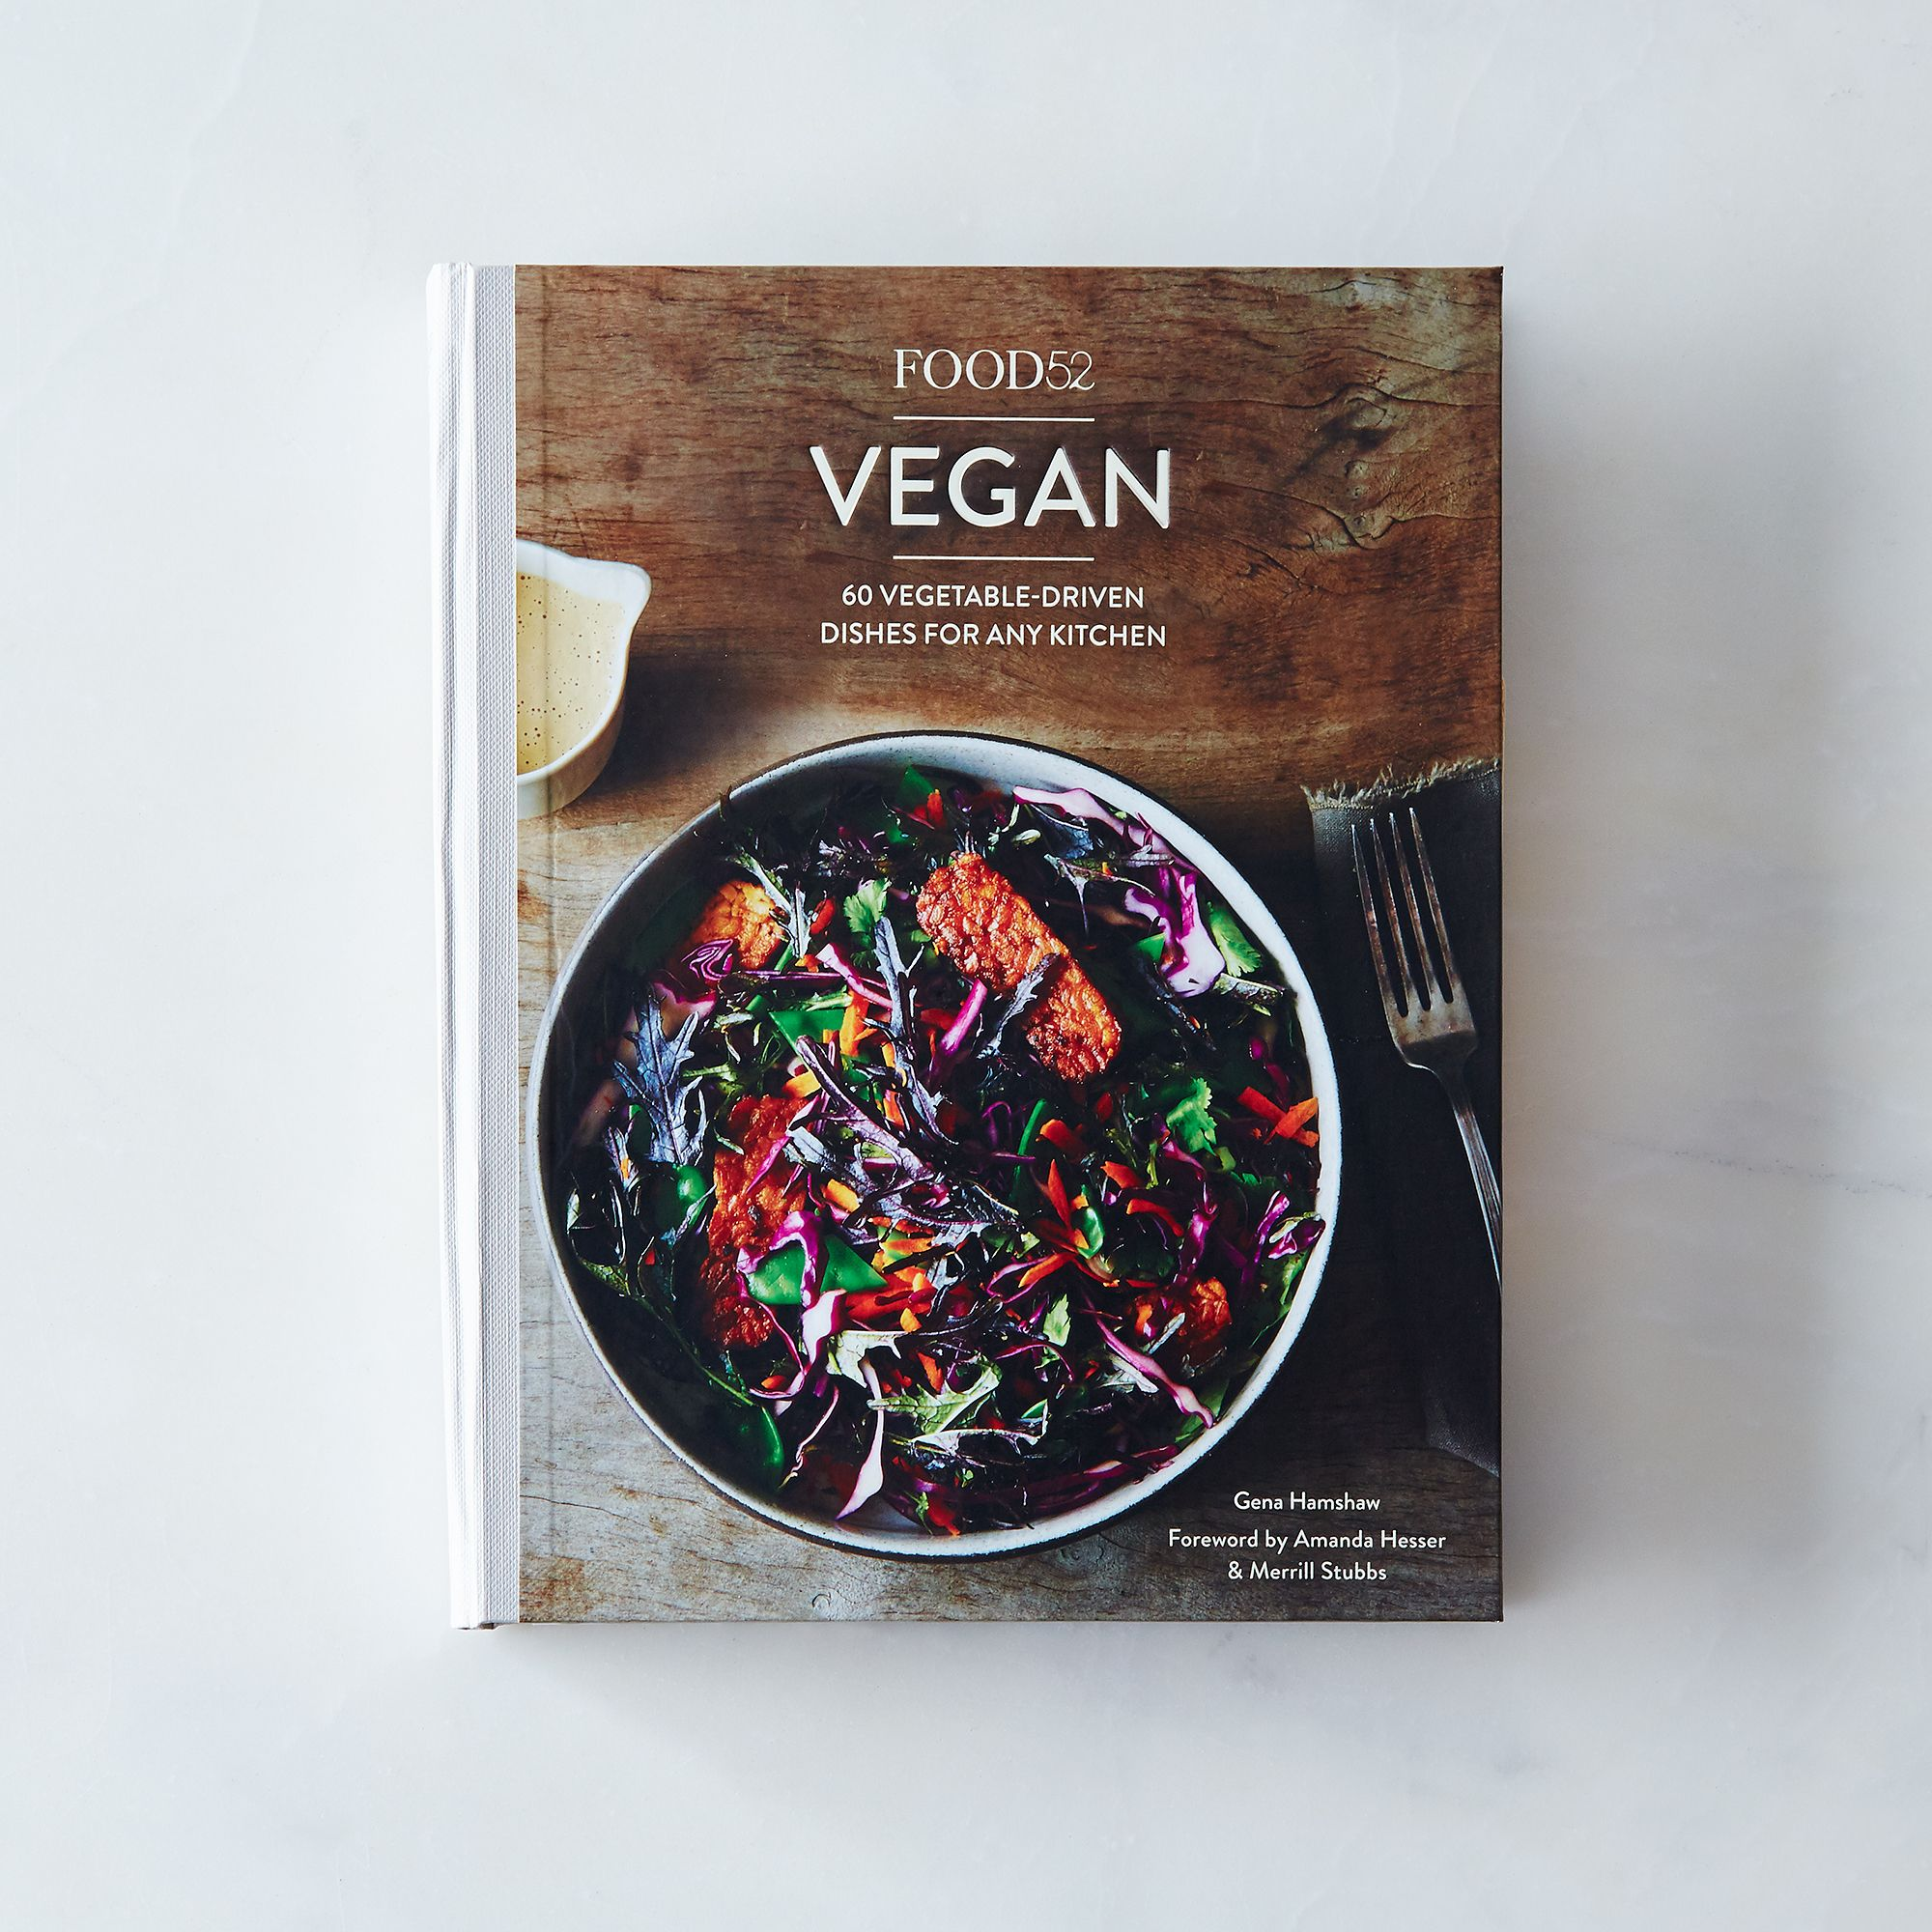 932dc0b8 c3ac 11e5 9f5e 0ec3b80ccb89  2015 0527 food52 vegan book james ransom 014